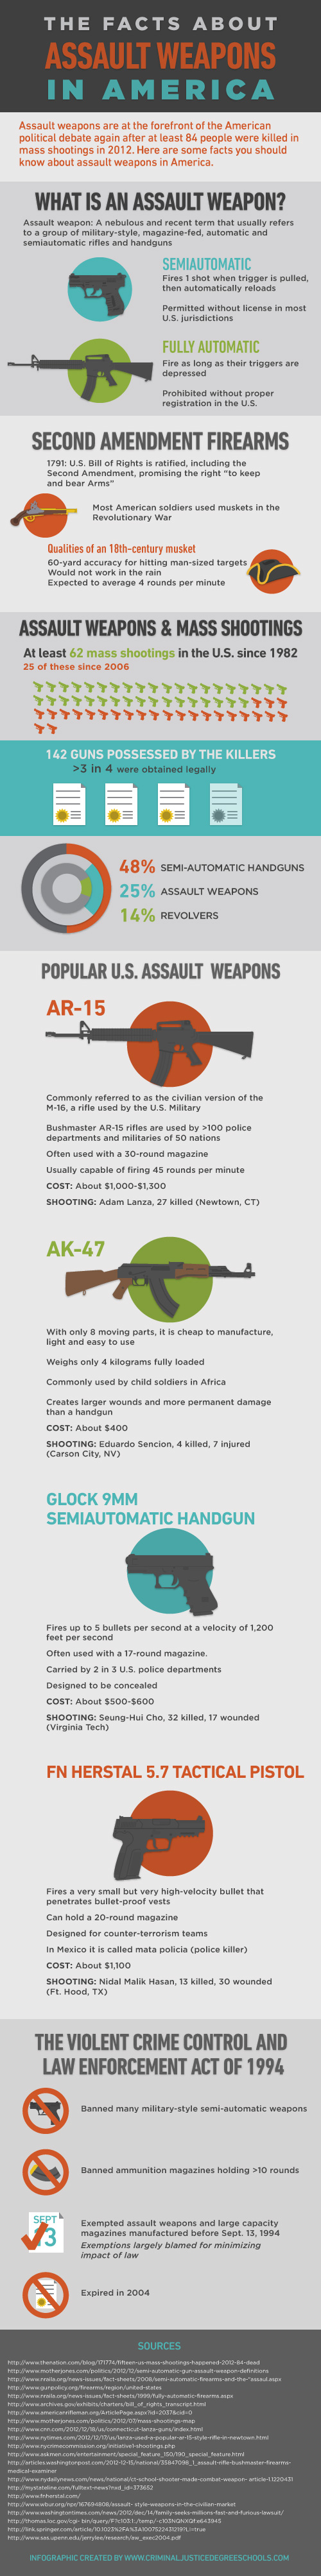 Assault Weapons in the US